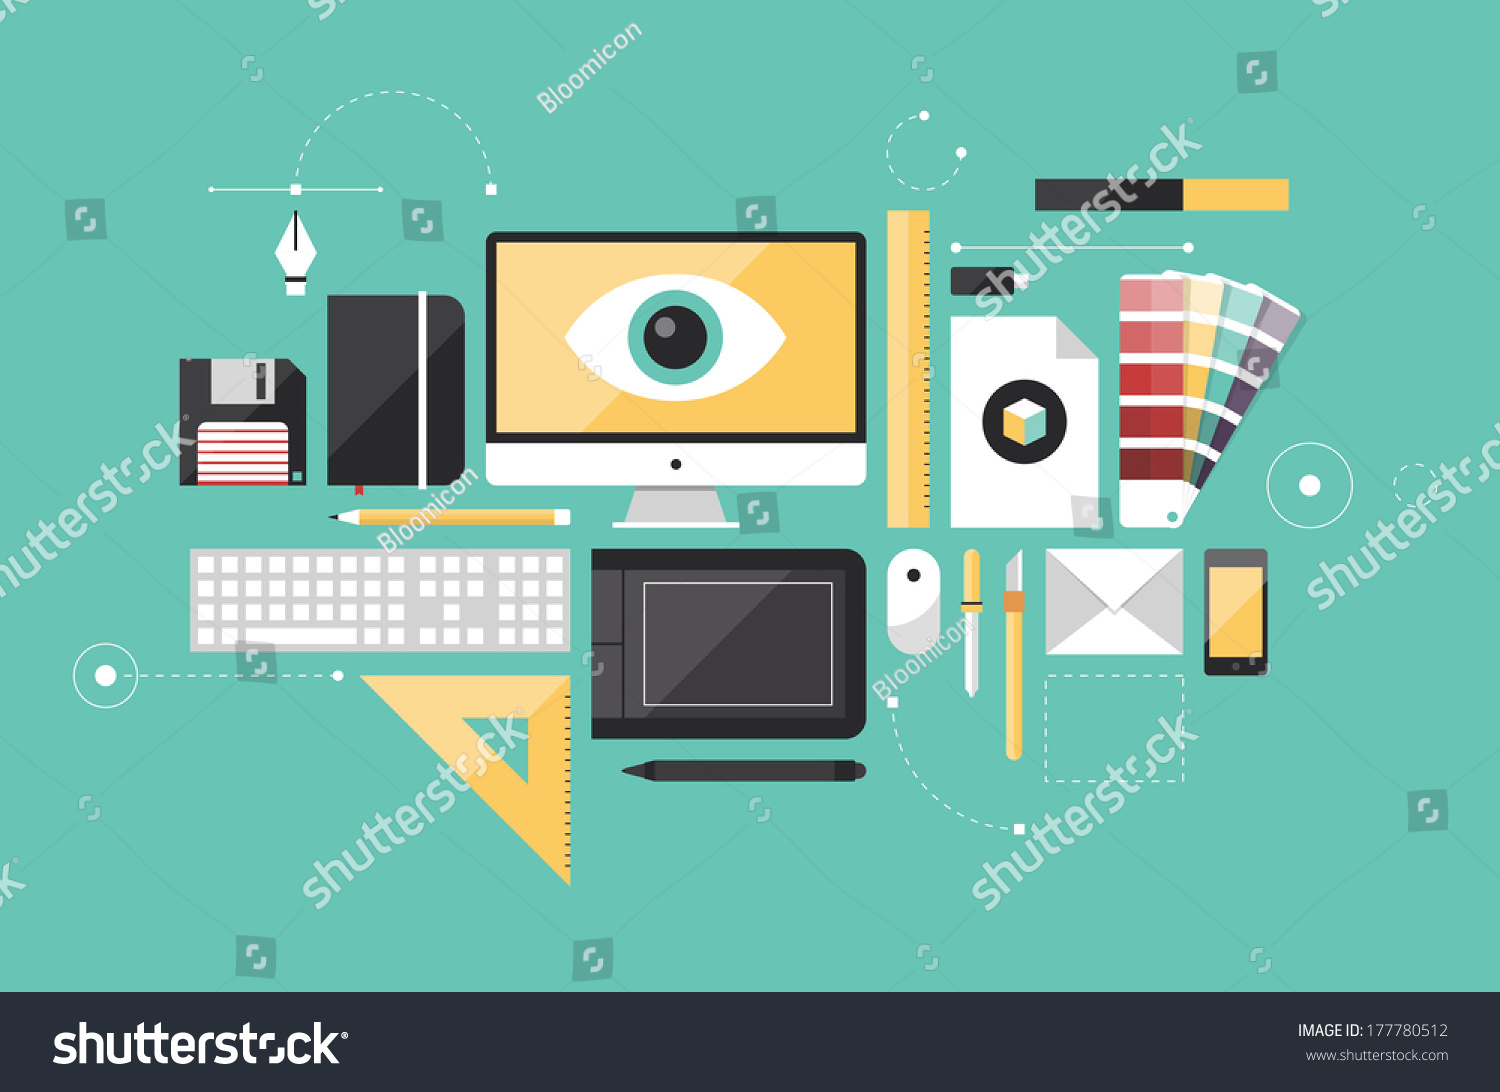 Flat design style modern vector illustration stock vector for Office design tool